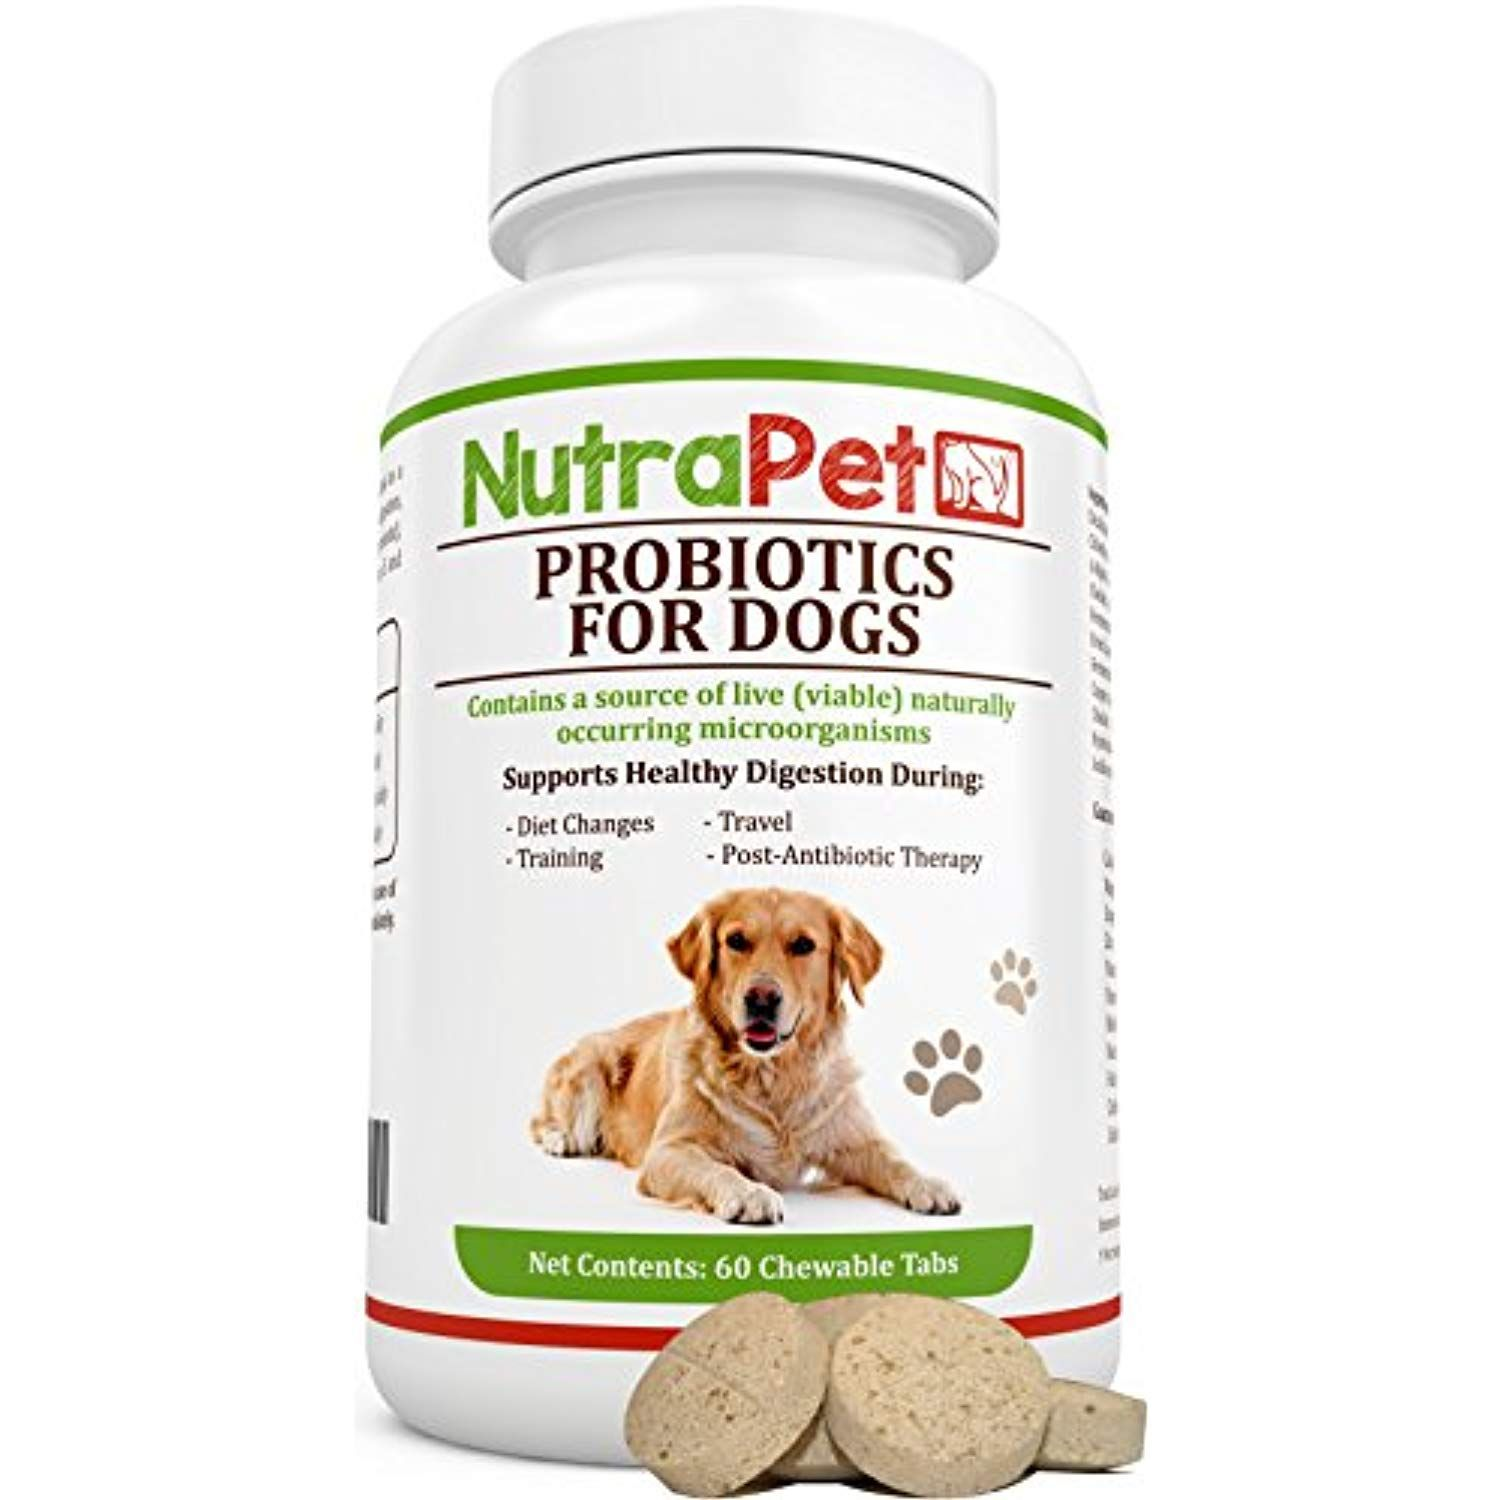 NutraPet Probiotics for Dogs Chewable, Digestive Health